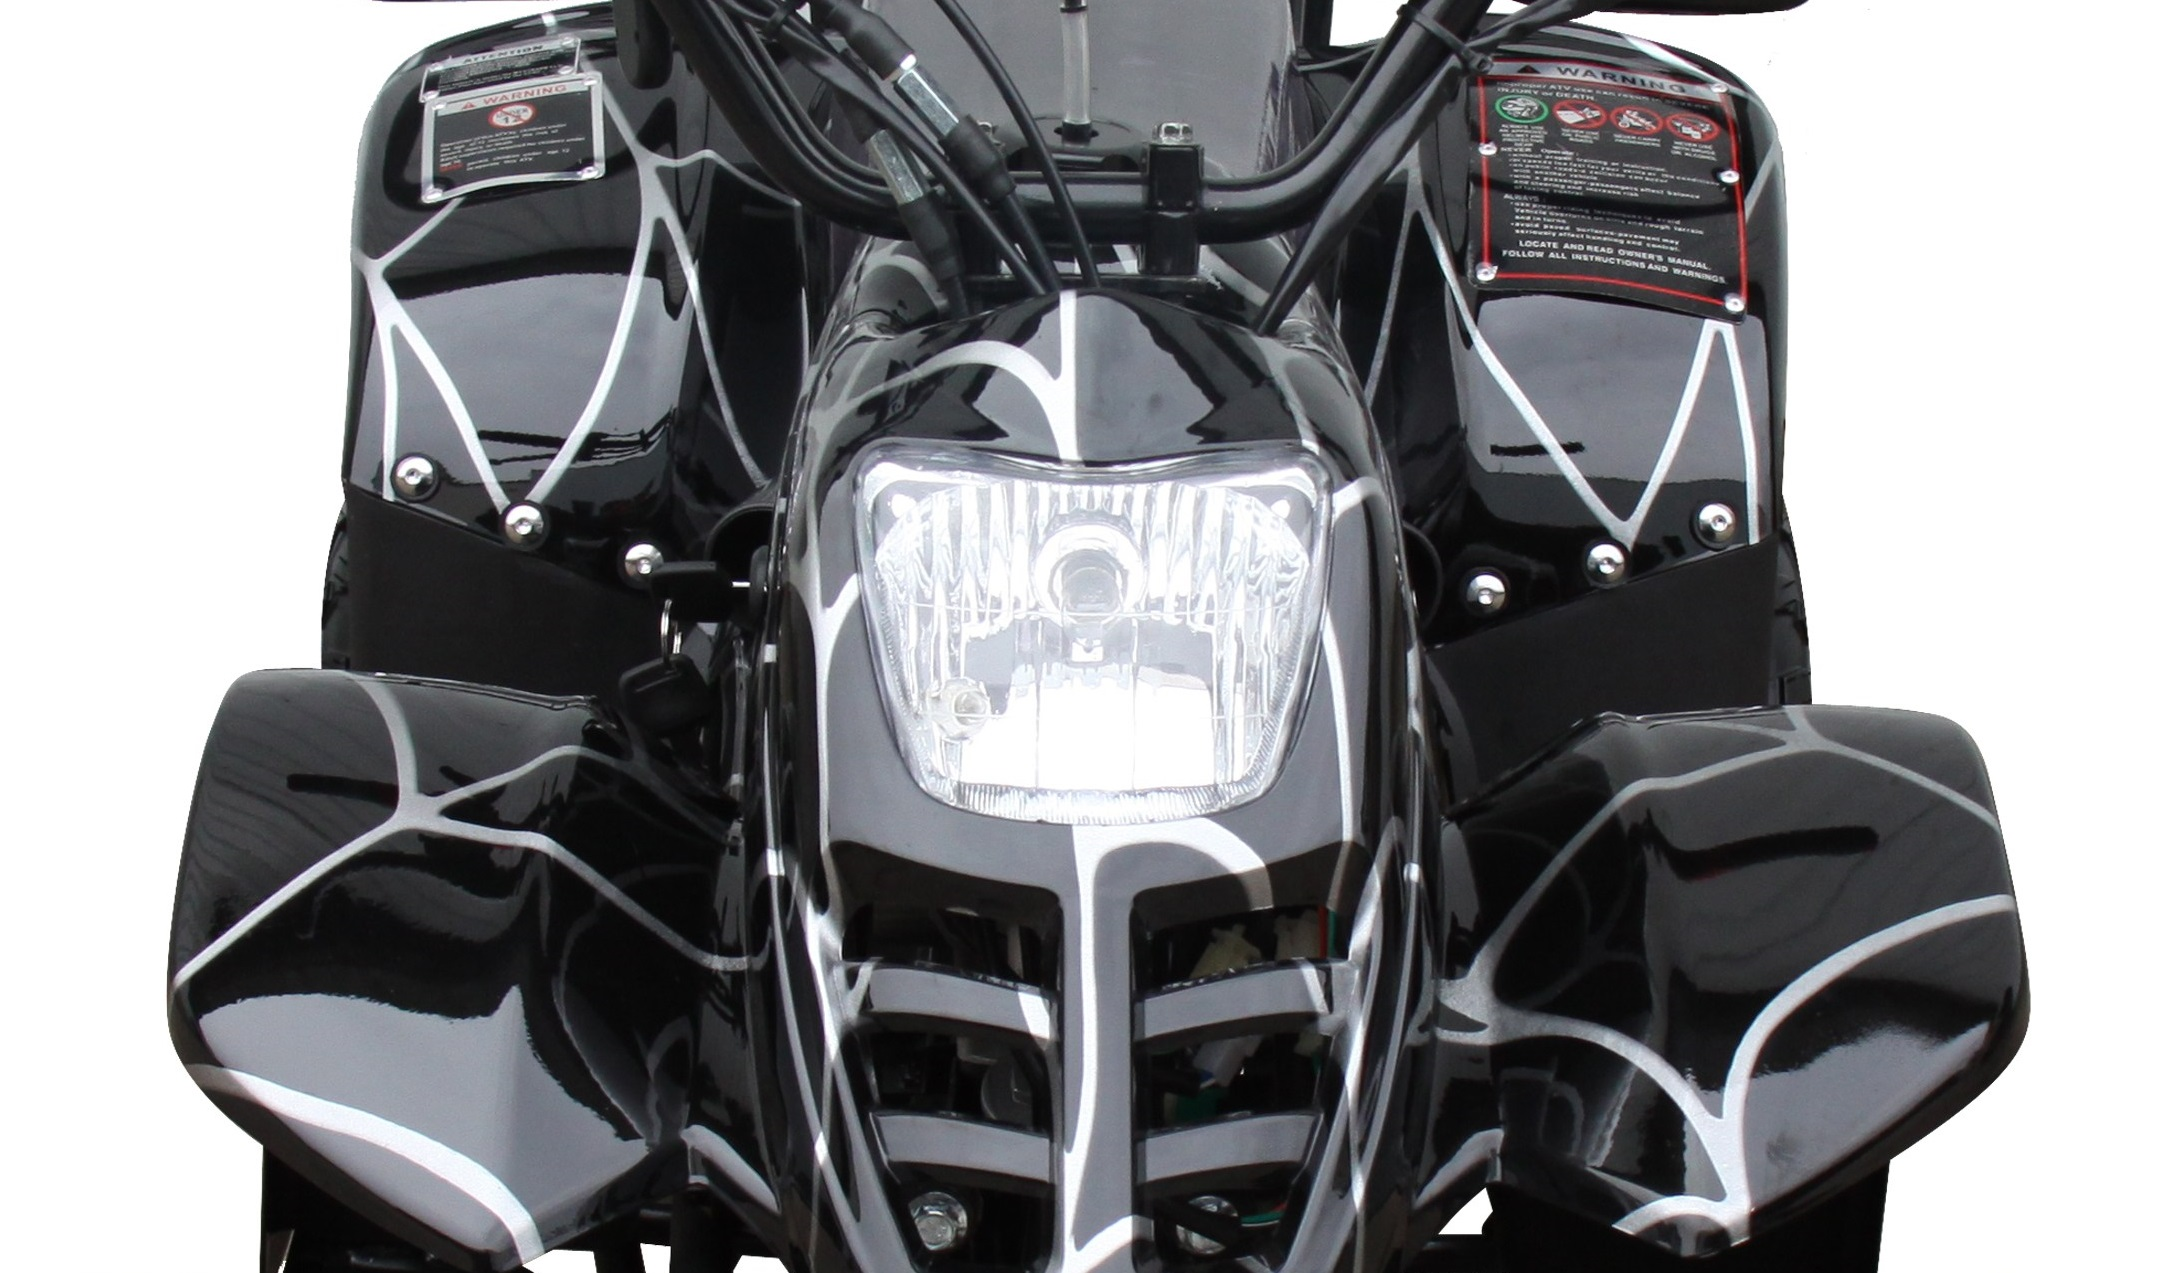 panther 110cc atv wiring schematic trusted wiring diagrams 110cc wiring  schematic extreme motor sales \\